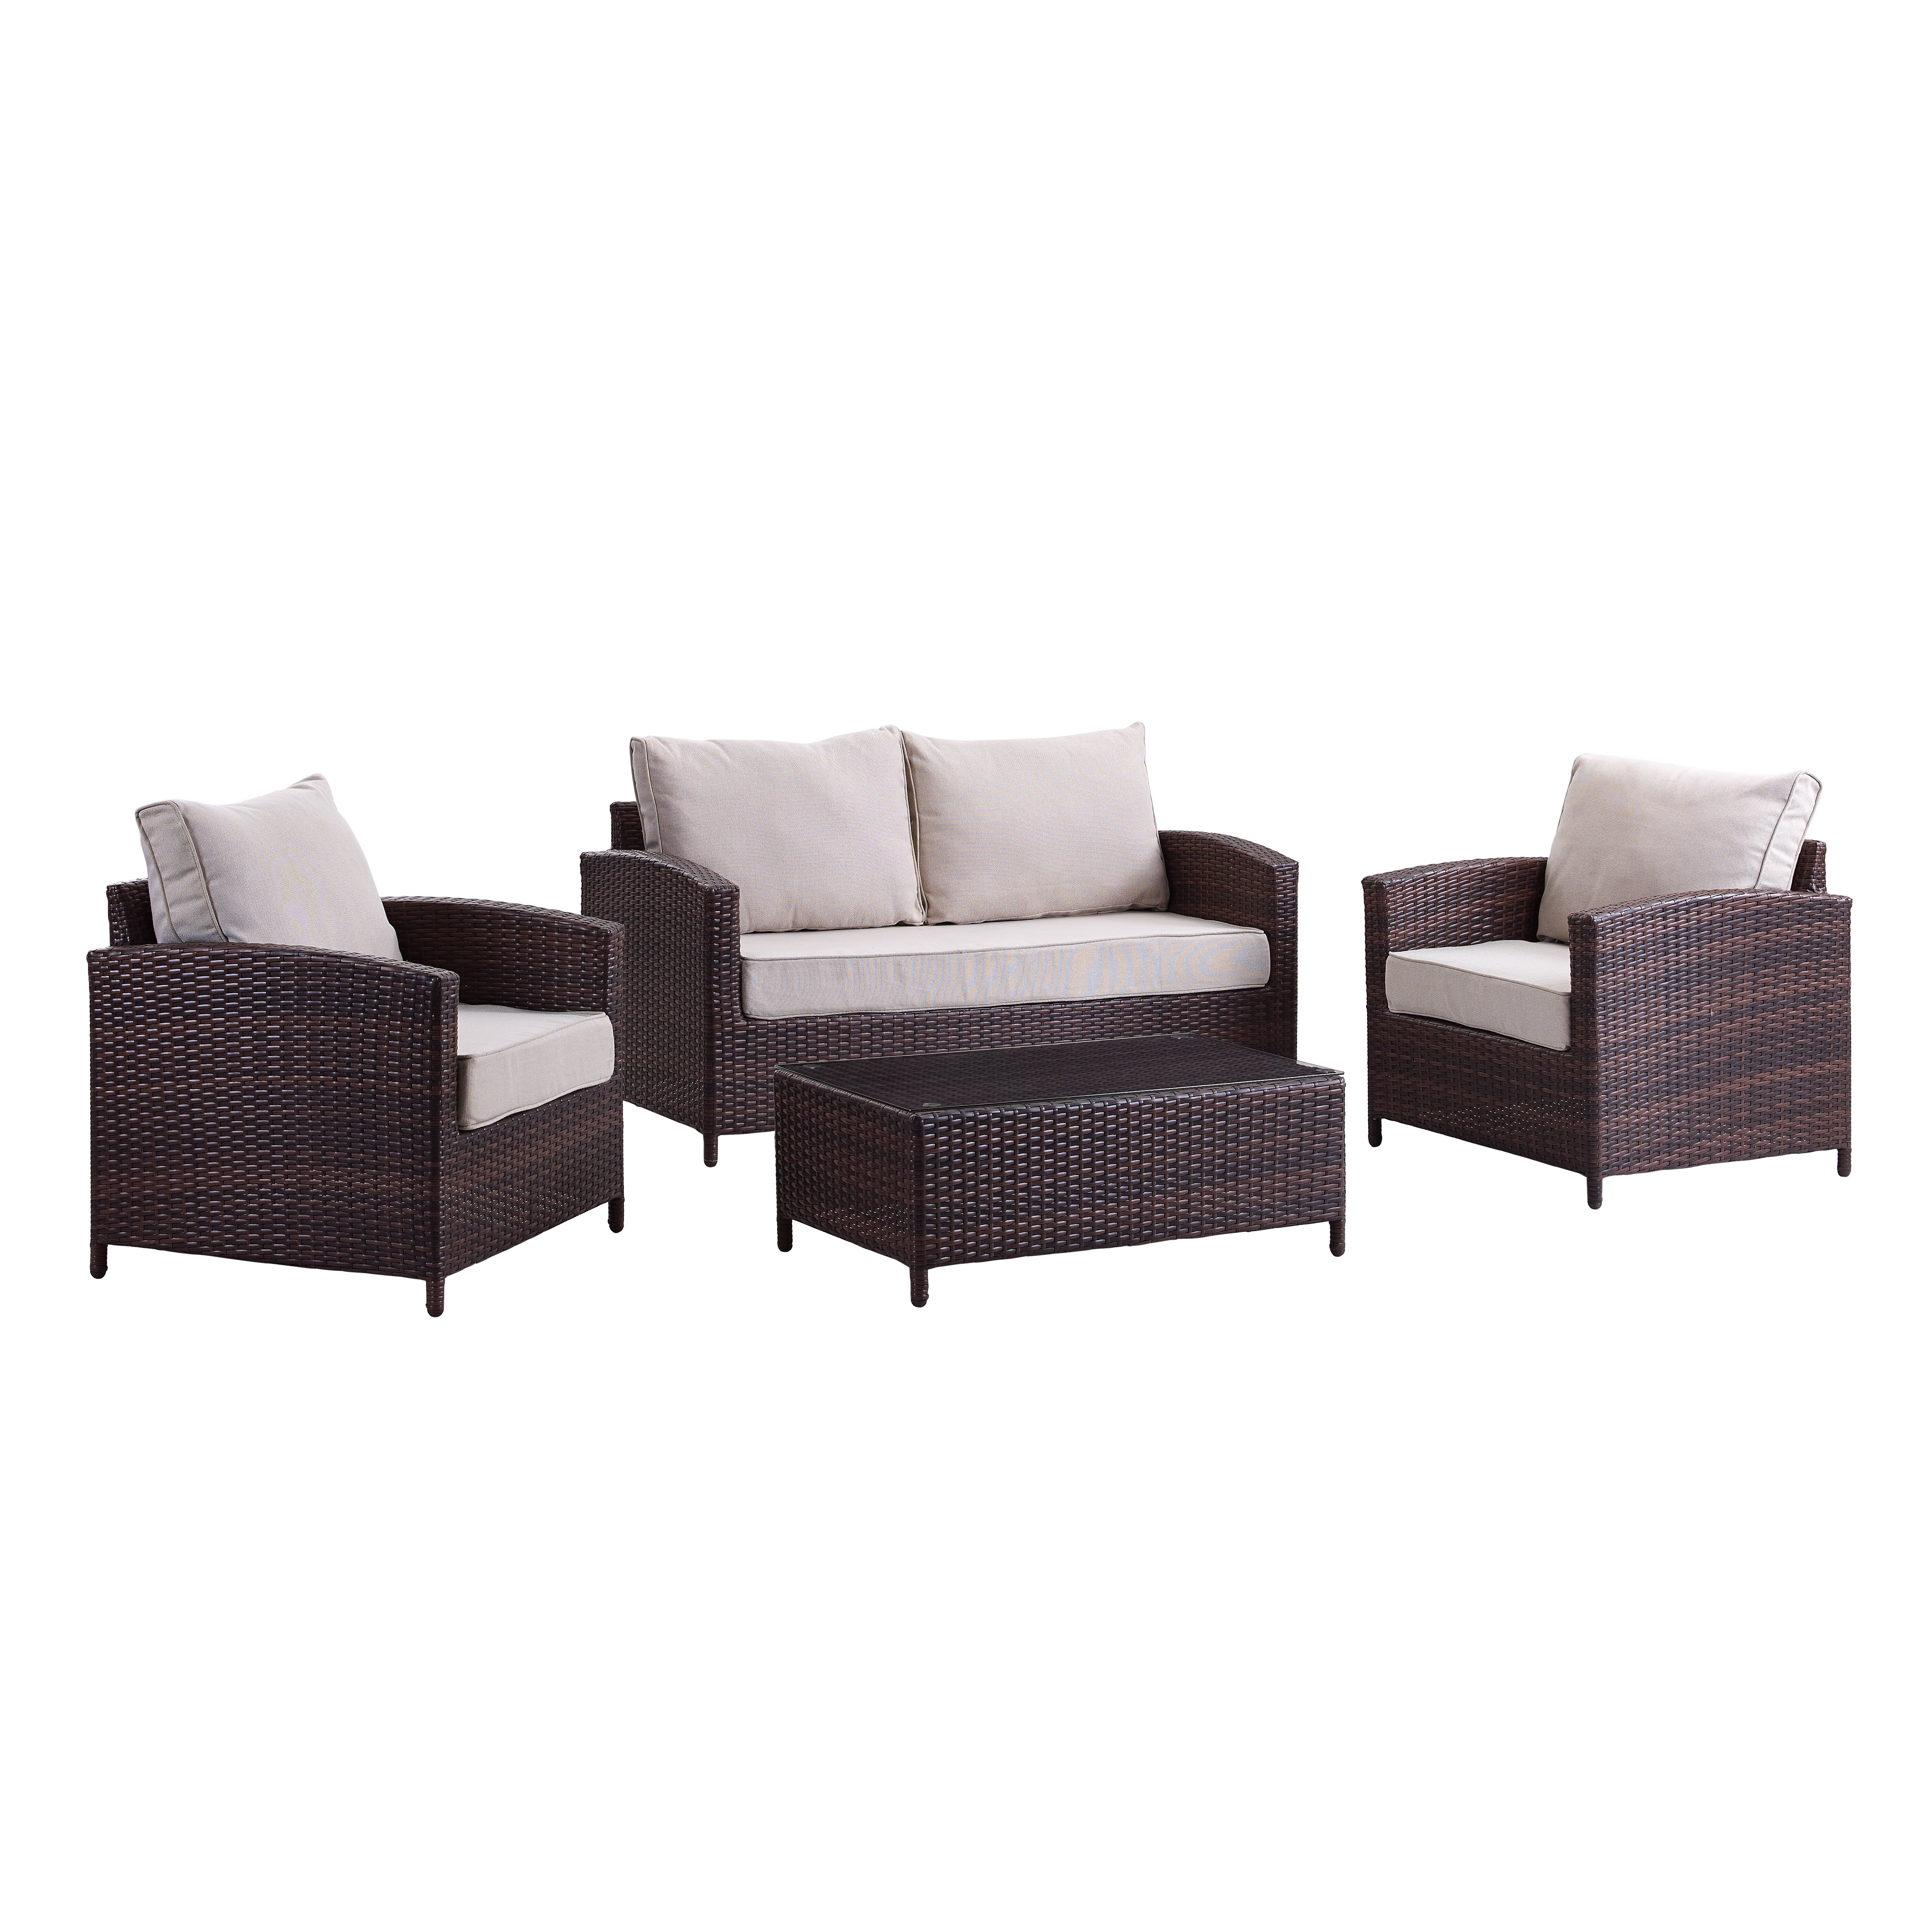 Bay isle home petunia 4 piece deep seating group with for Home piece